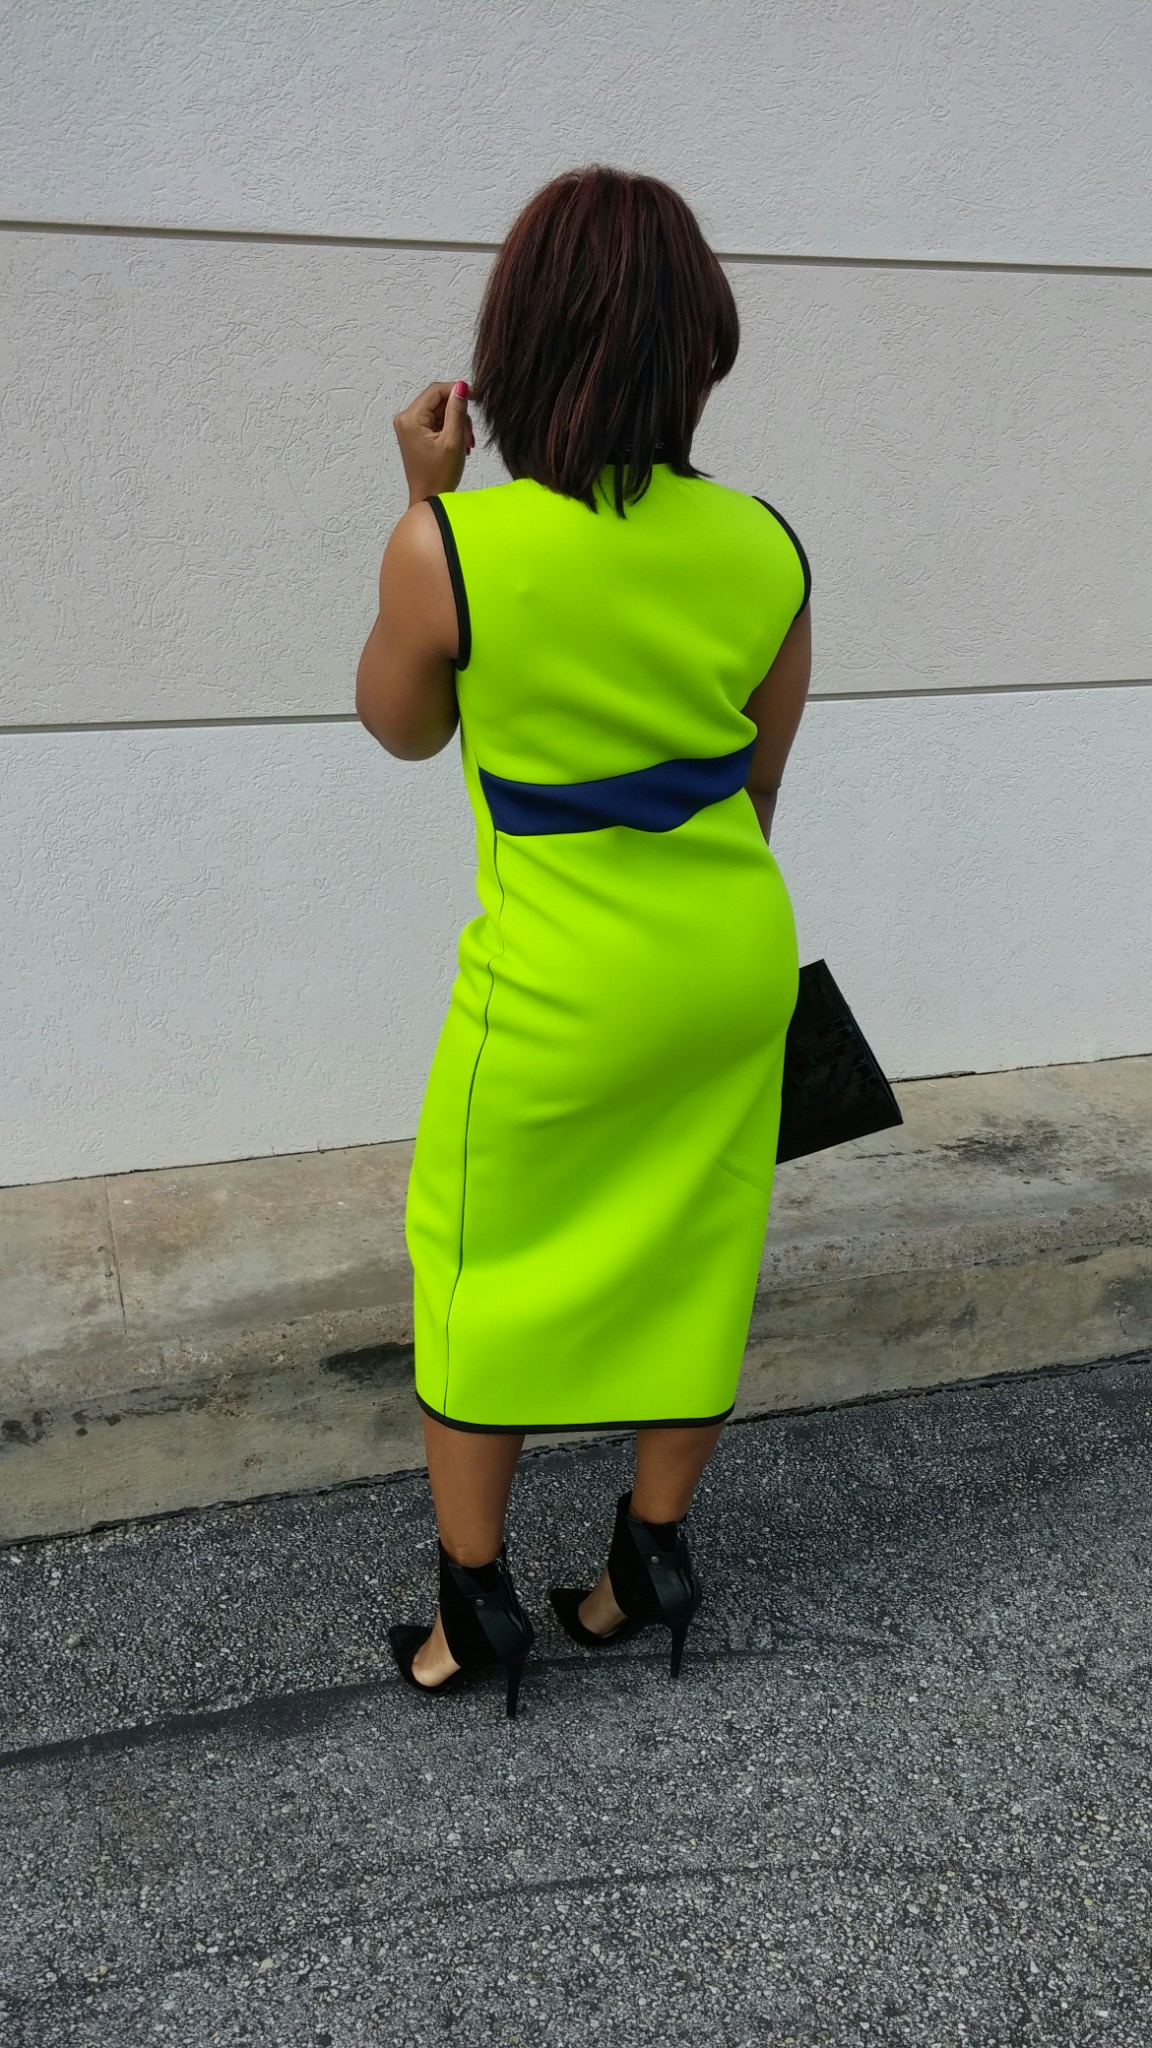 Neon Green Neoprene Dress by 3degreesdb.com